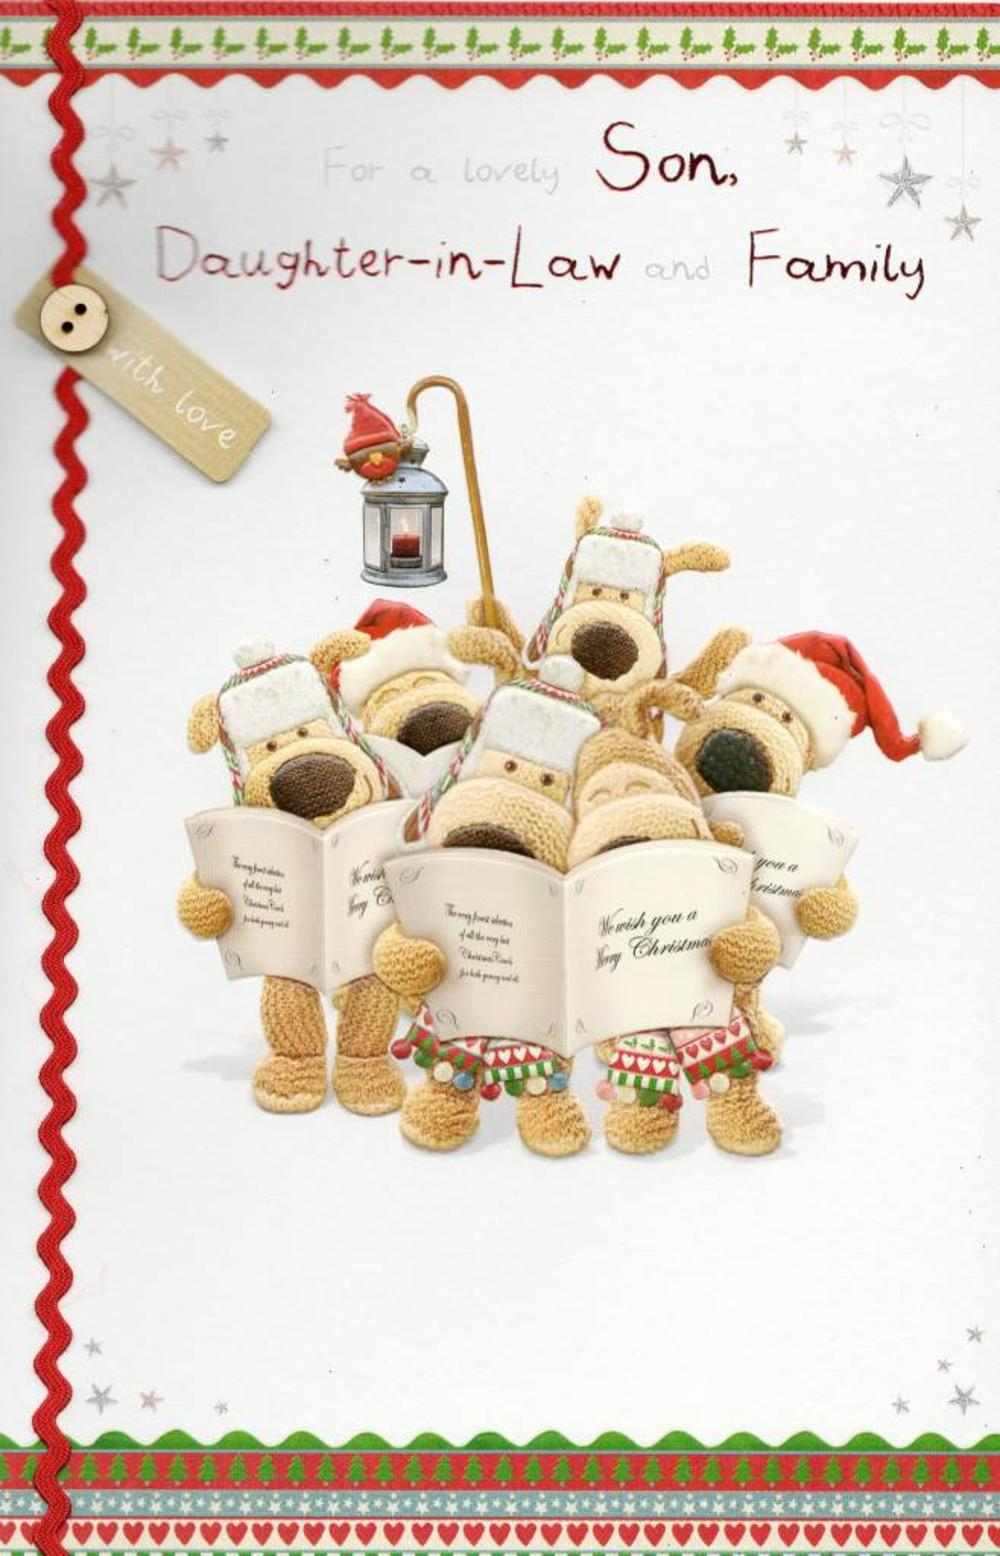 Boofle Son & Daughter-in-Law & Family Christmas Card